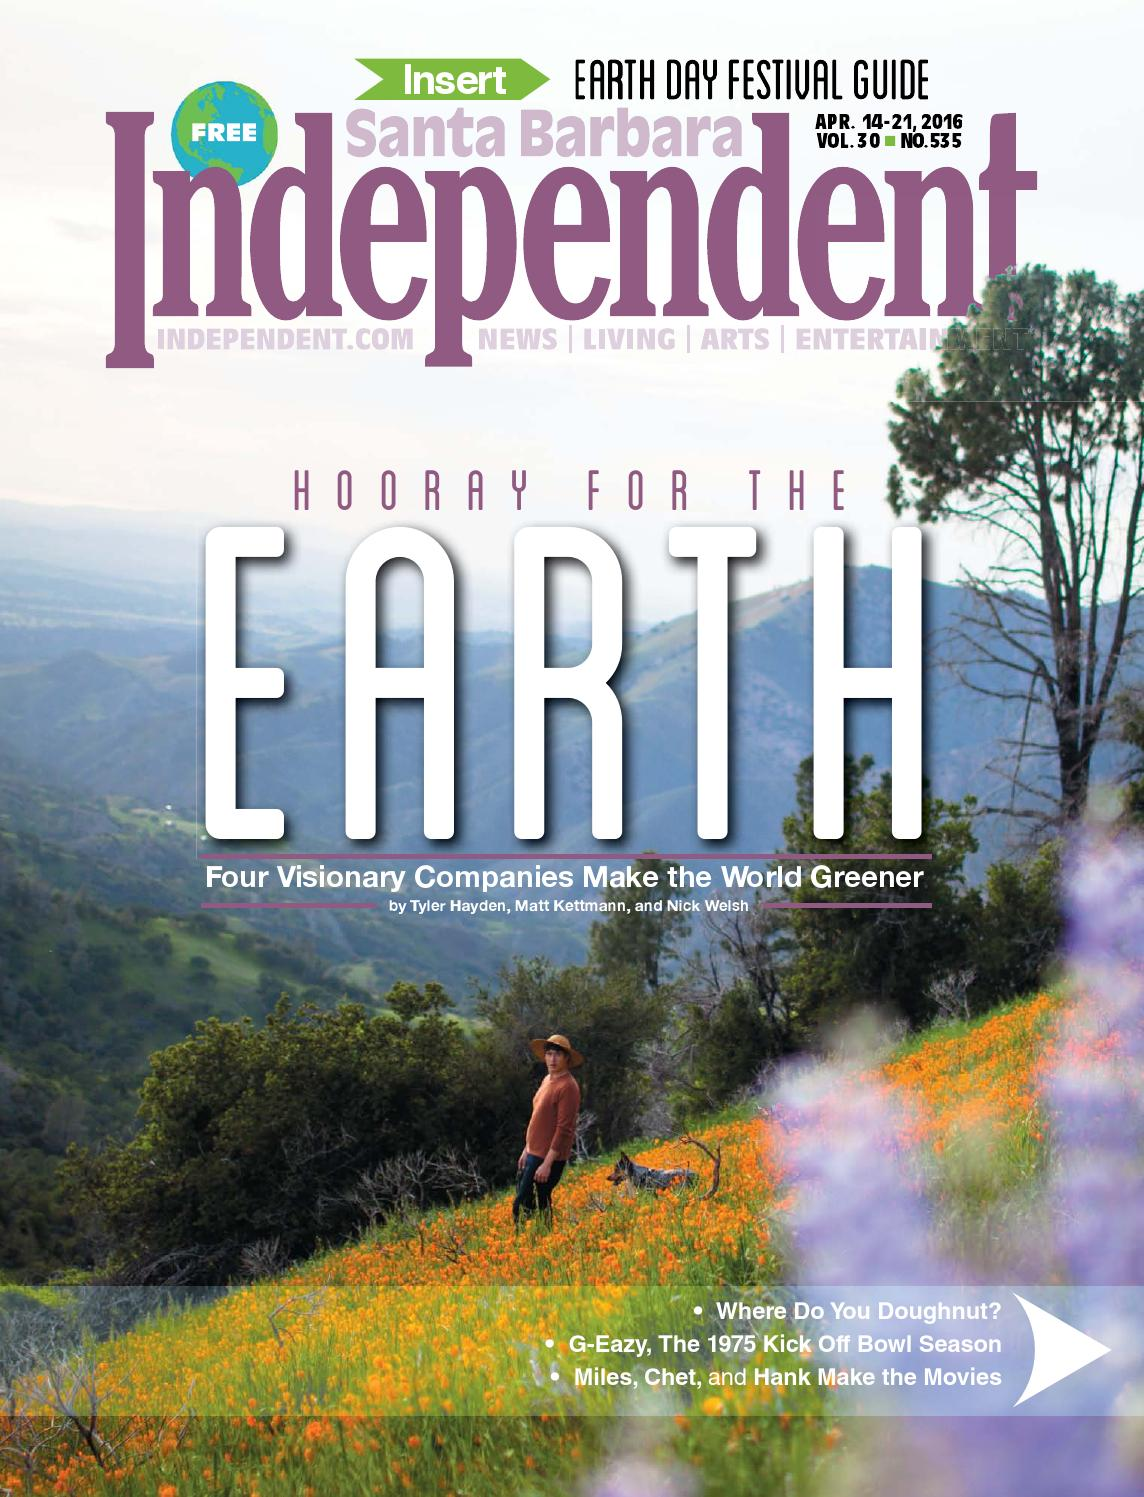 santa barbara independent 01 14 16 by sb independent issuu